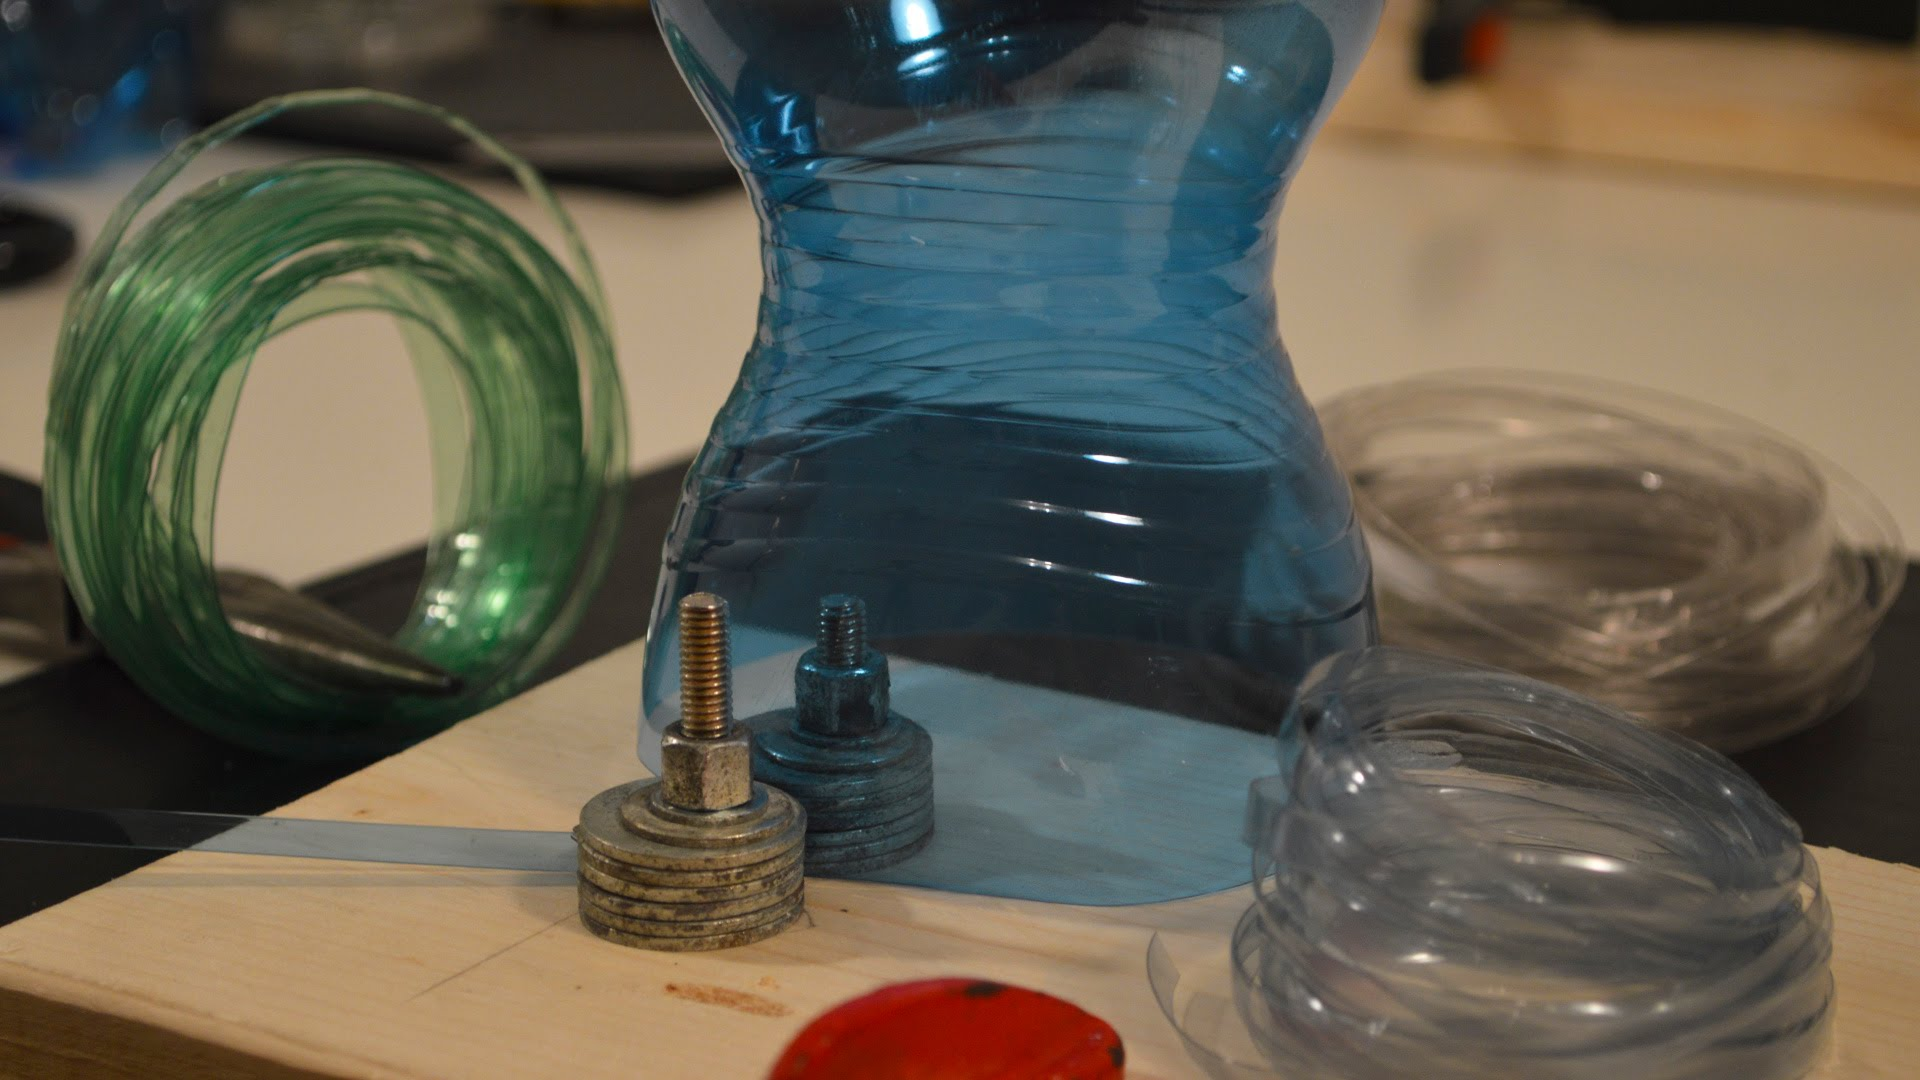 This Amazing Trick Turns Plastic Bottles Into Wire And